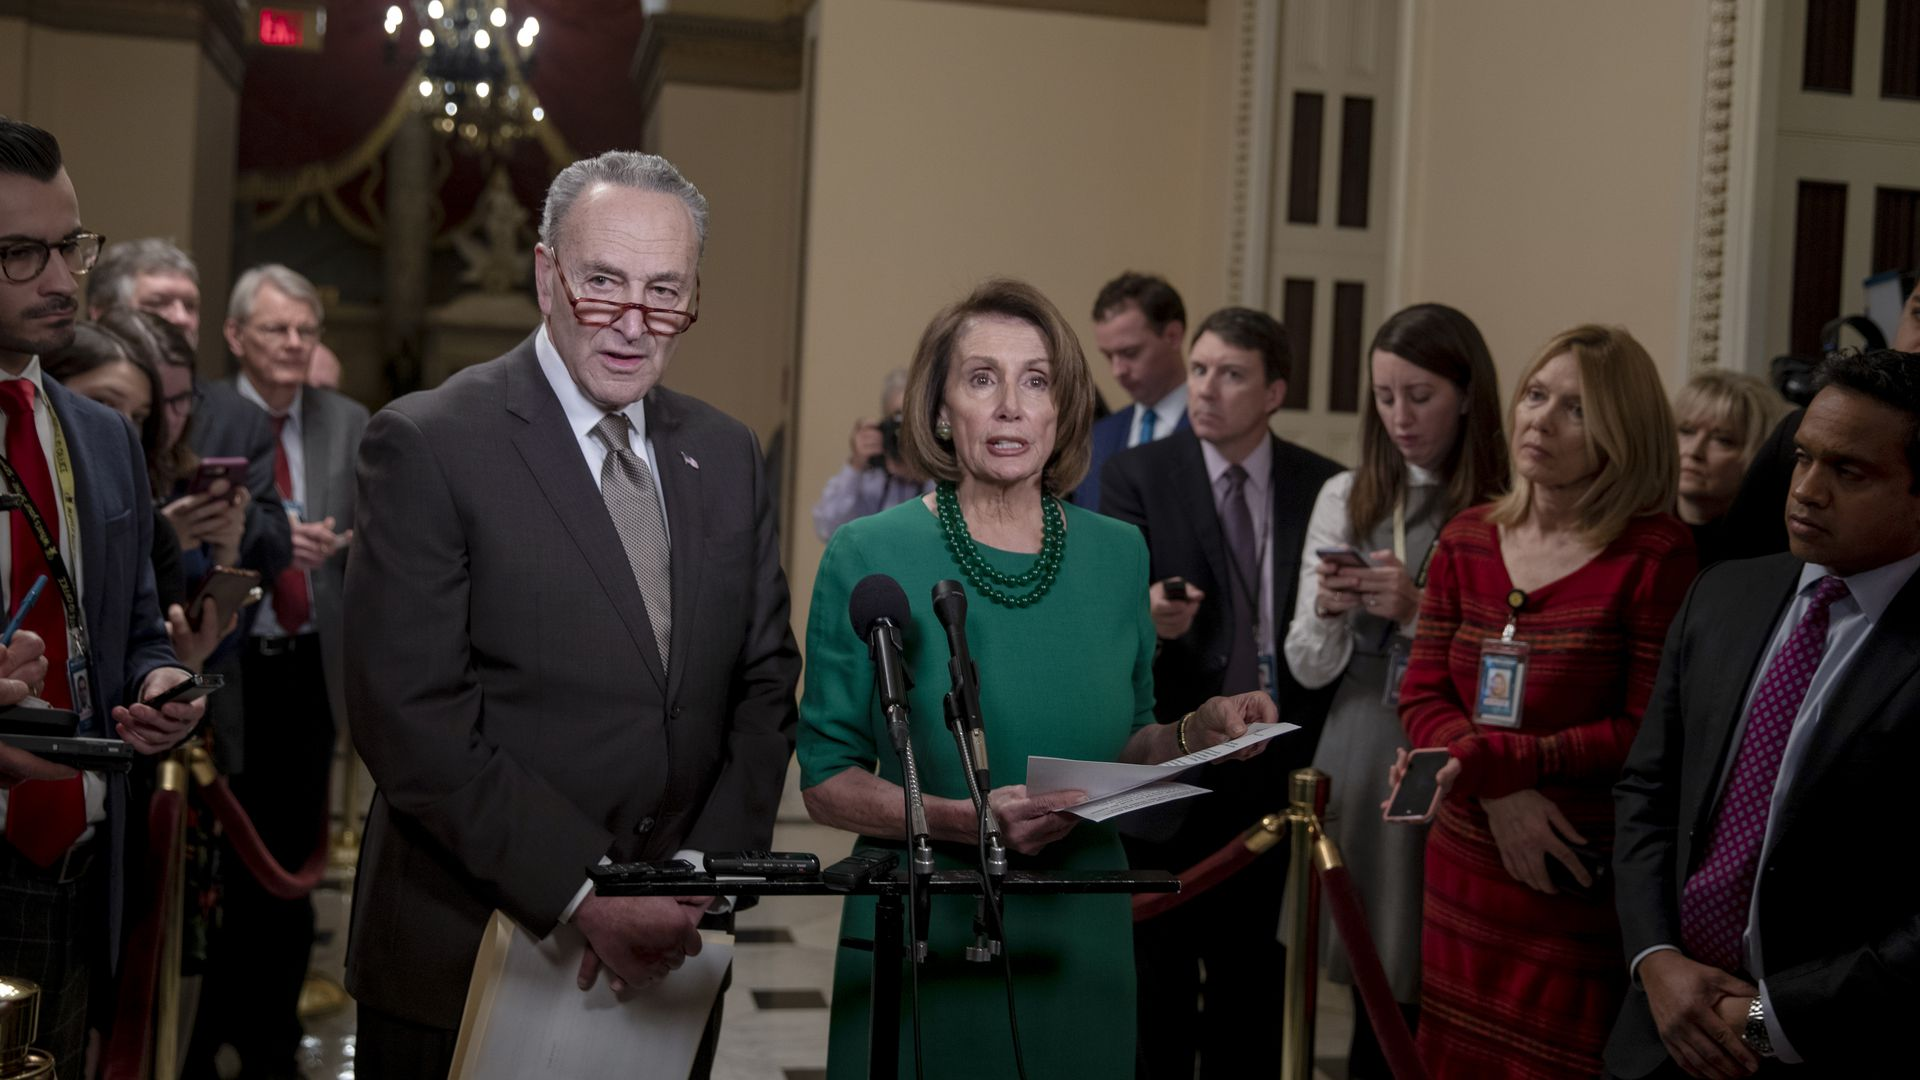 Chuck Schumer and Nancy Pelosi look flabbergasted.